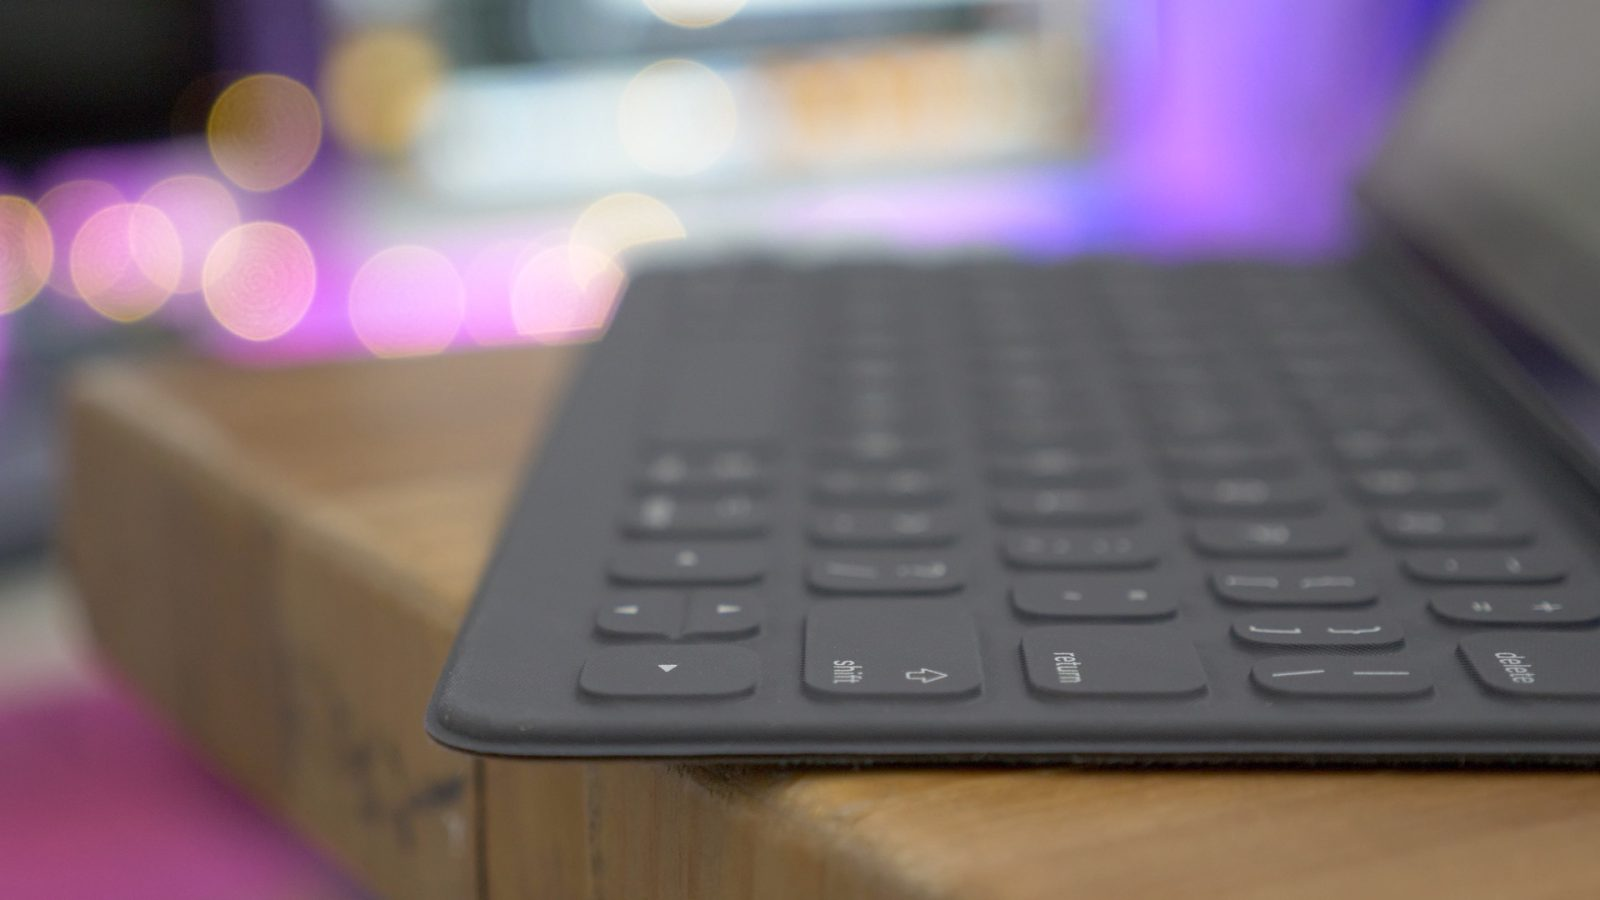 The Smart Keyboard makes the 10.5-inch iPad Pro a better device [Video]